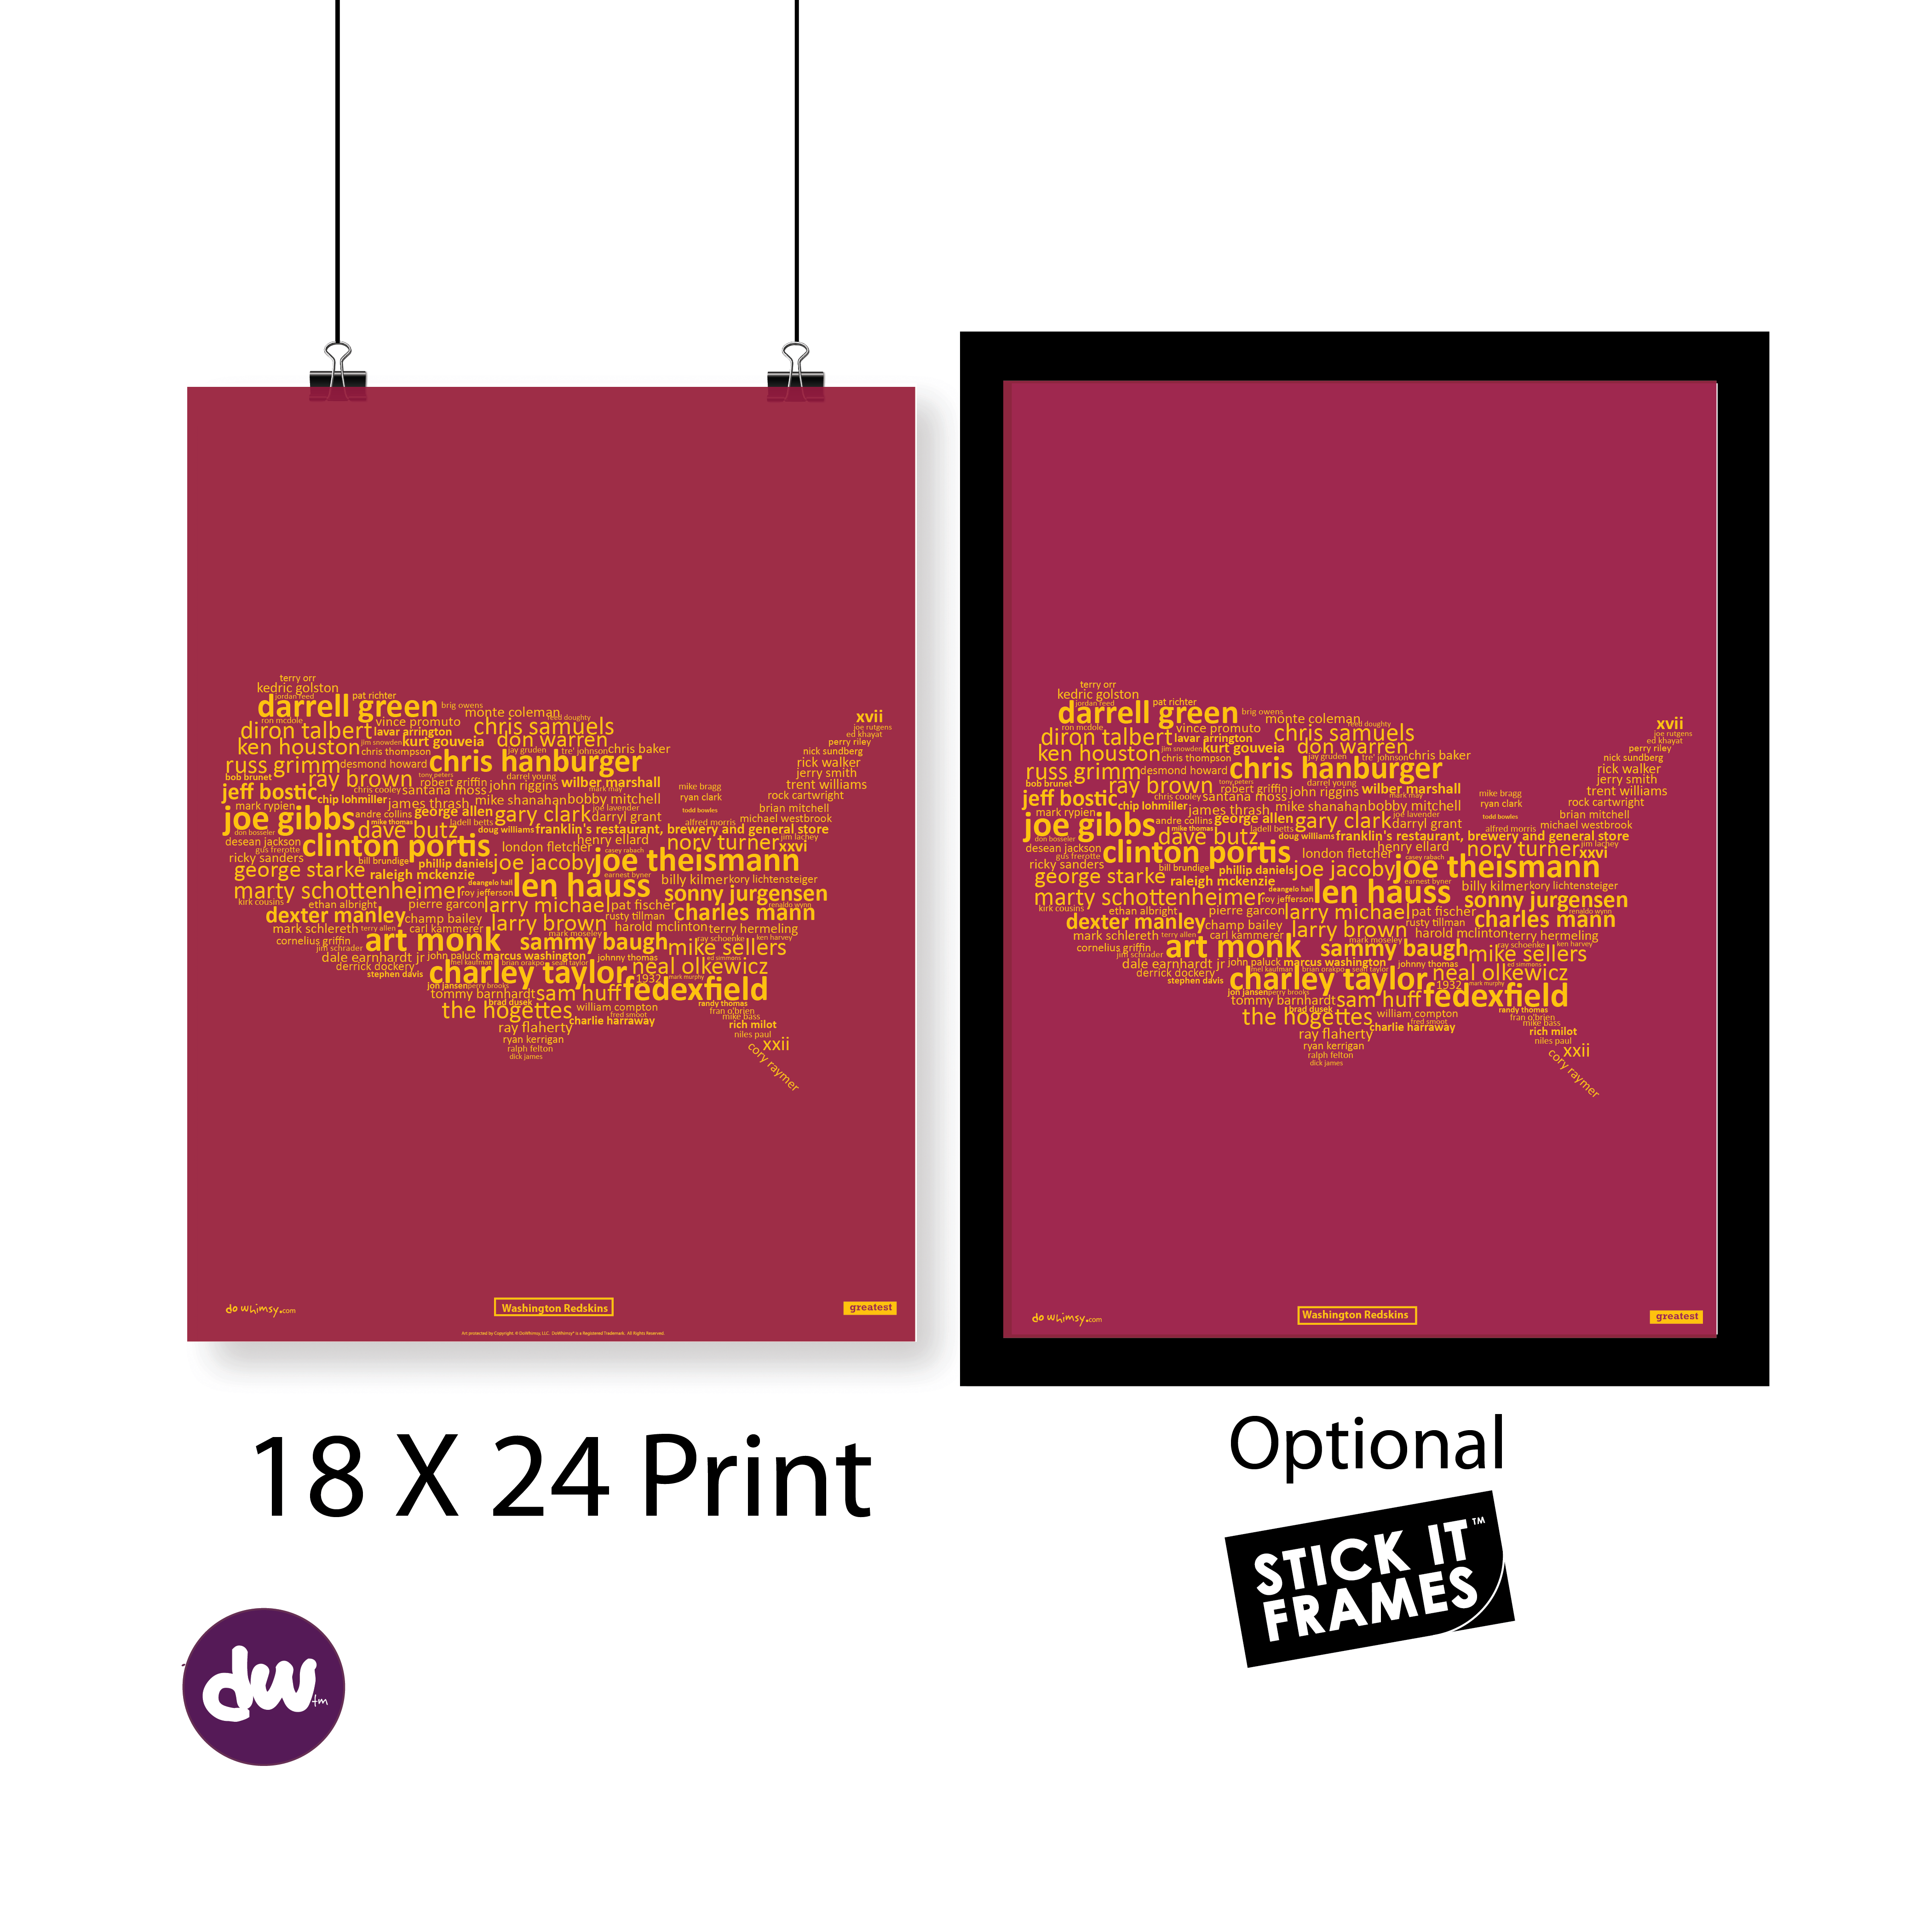 Greatest District of Columbia (Redskins) - All Products (Shirt, Art, Frames (R))